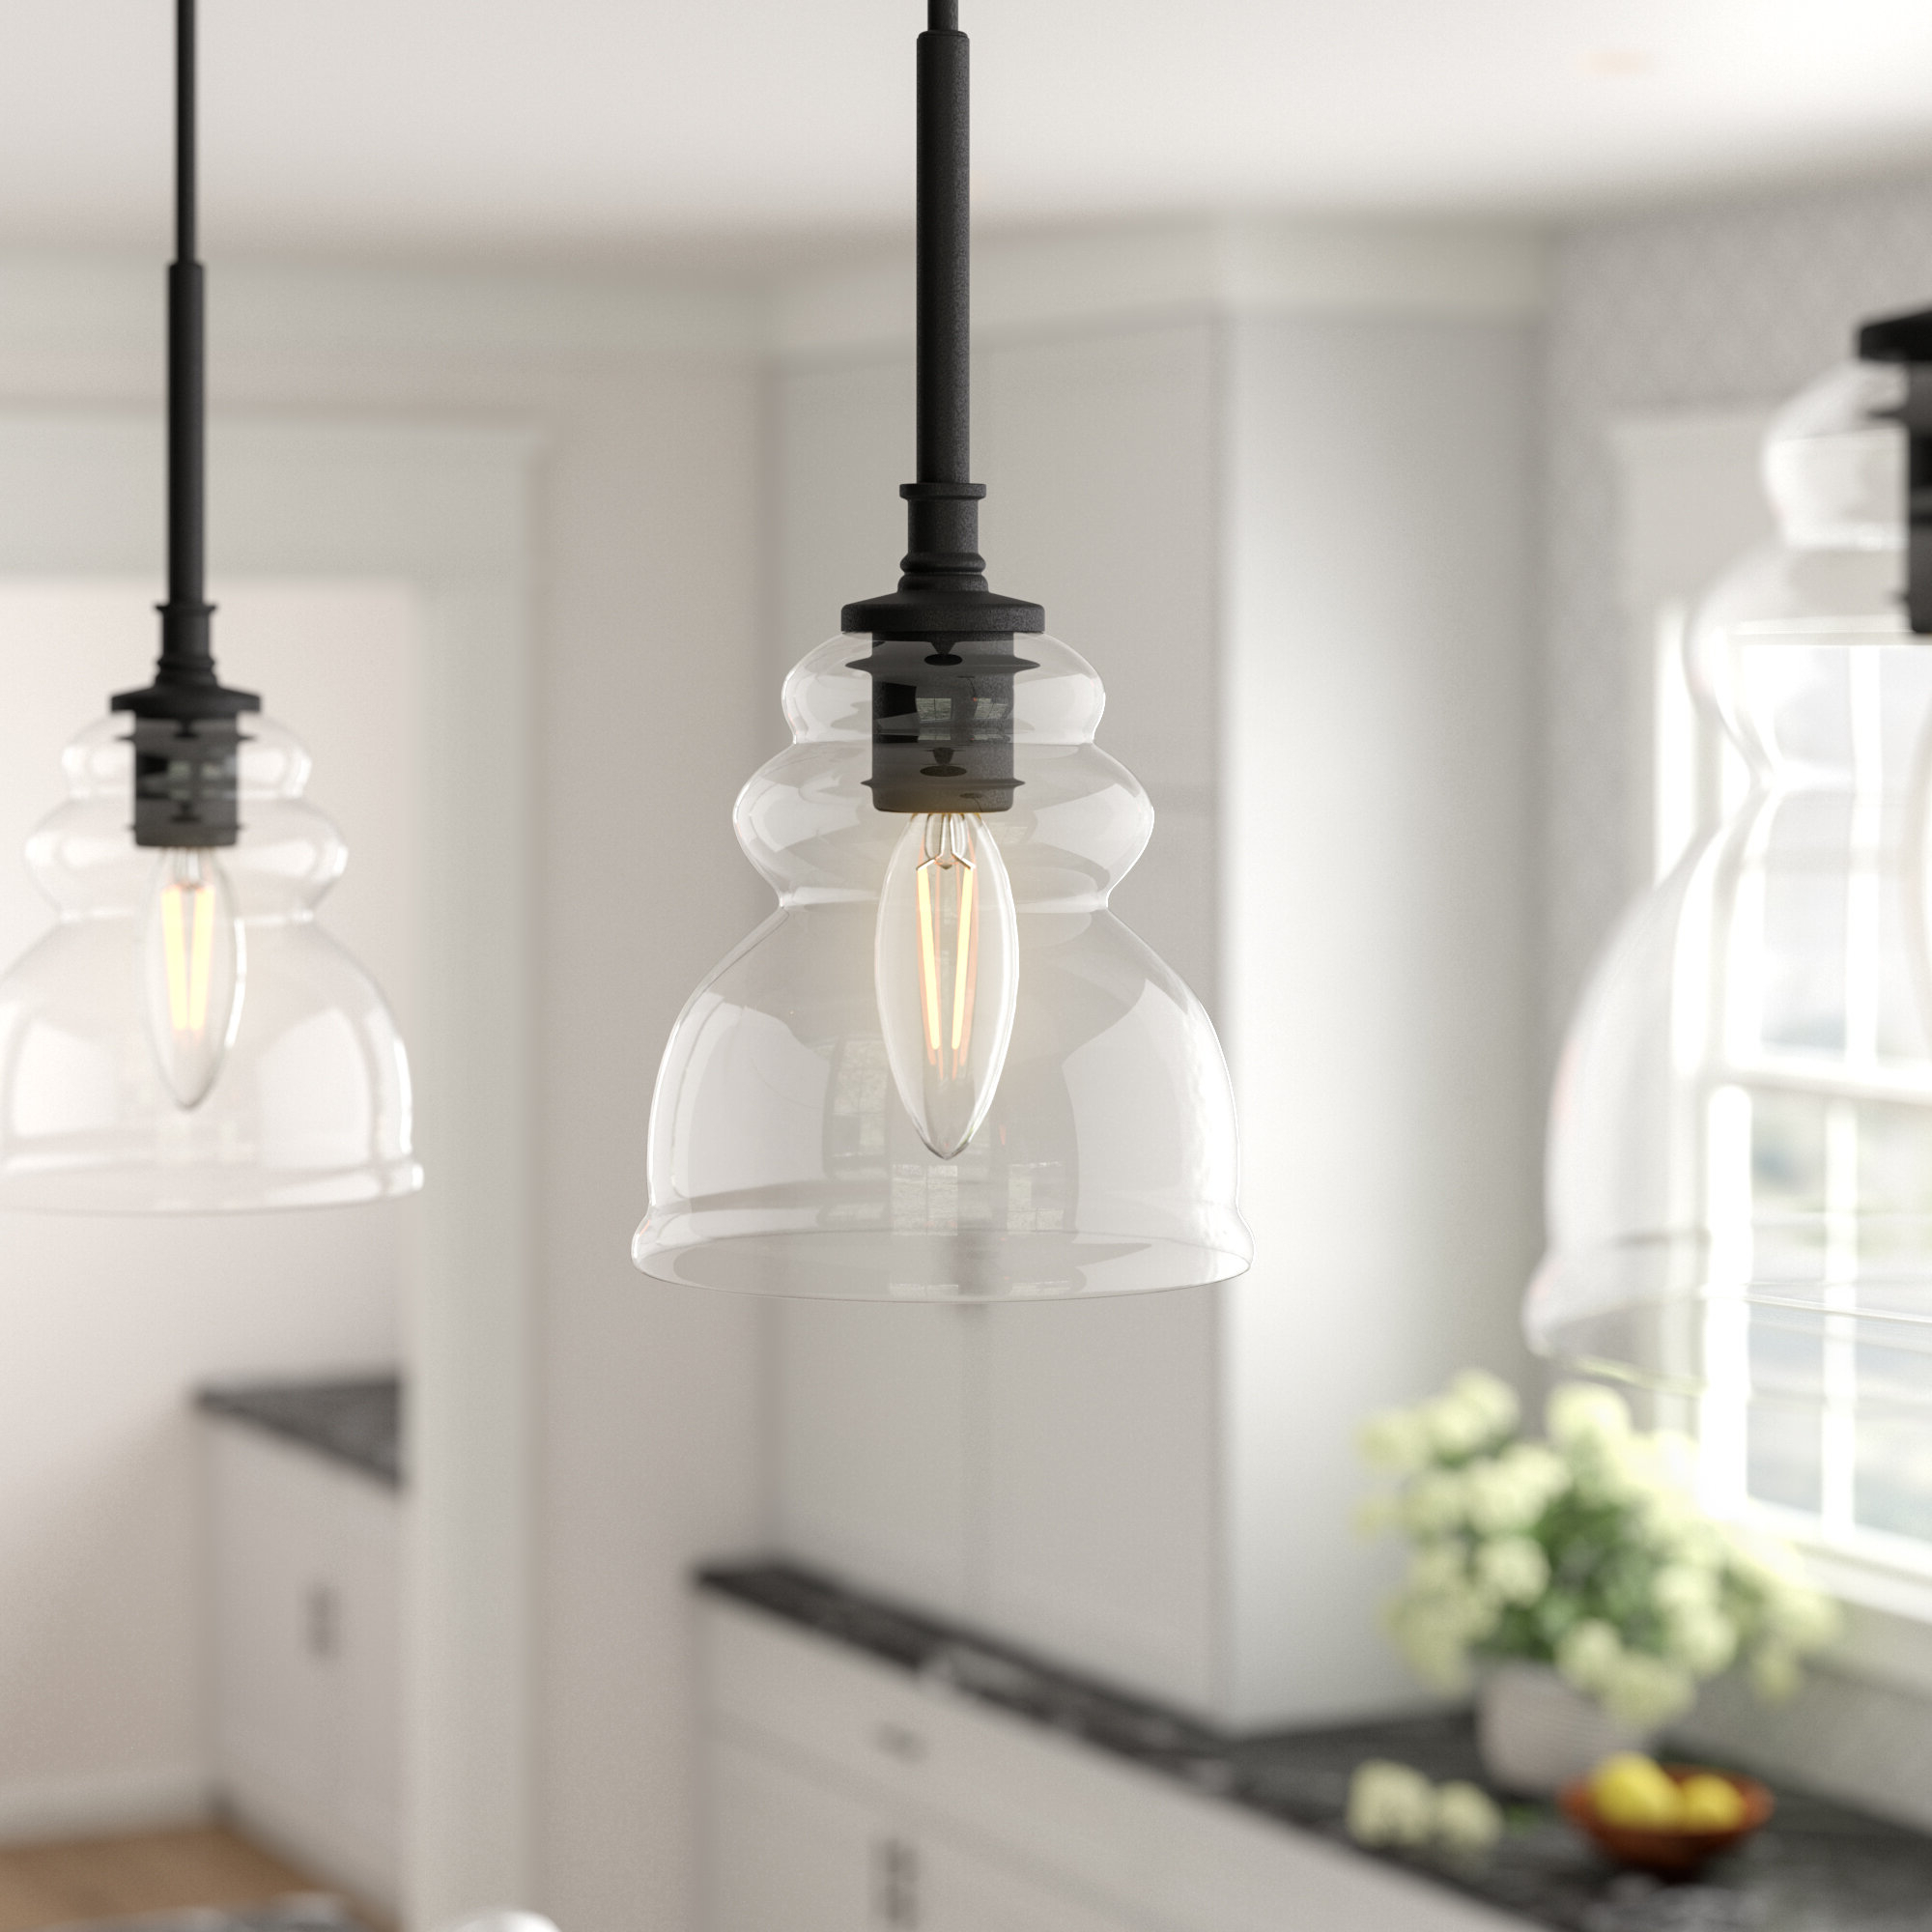 Goldie 1 Light Single Bell Pendants Throughout Fashionable Arla 1 Light Single Bell Pendant (View 4 of 20)